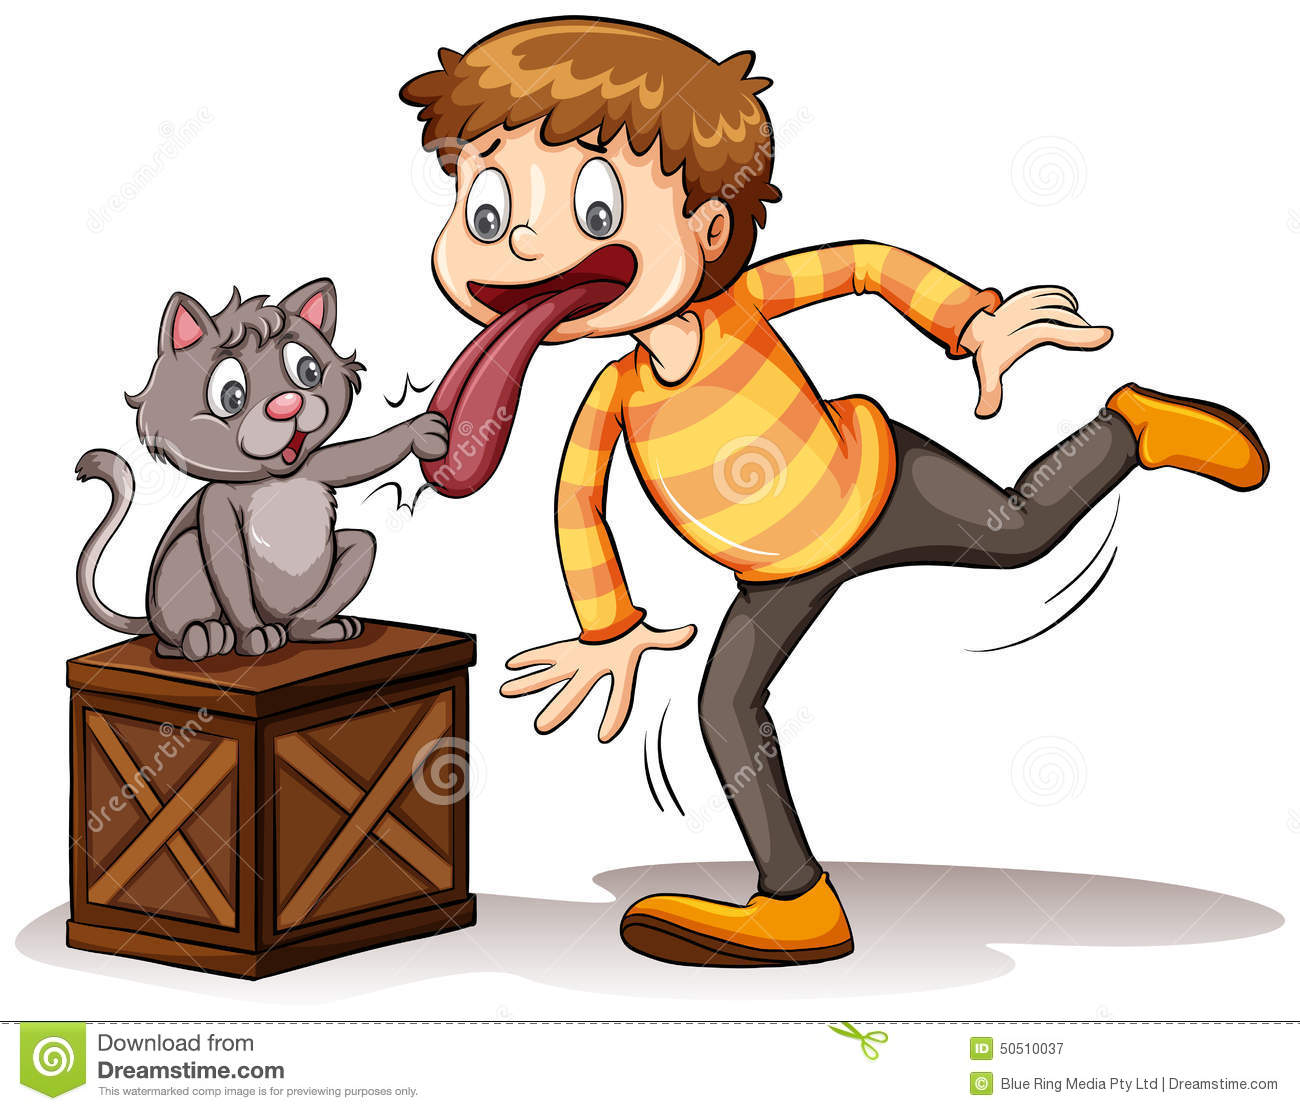 Cat Got Your Tongue Idiom Stock Vector - Image: 50510037